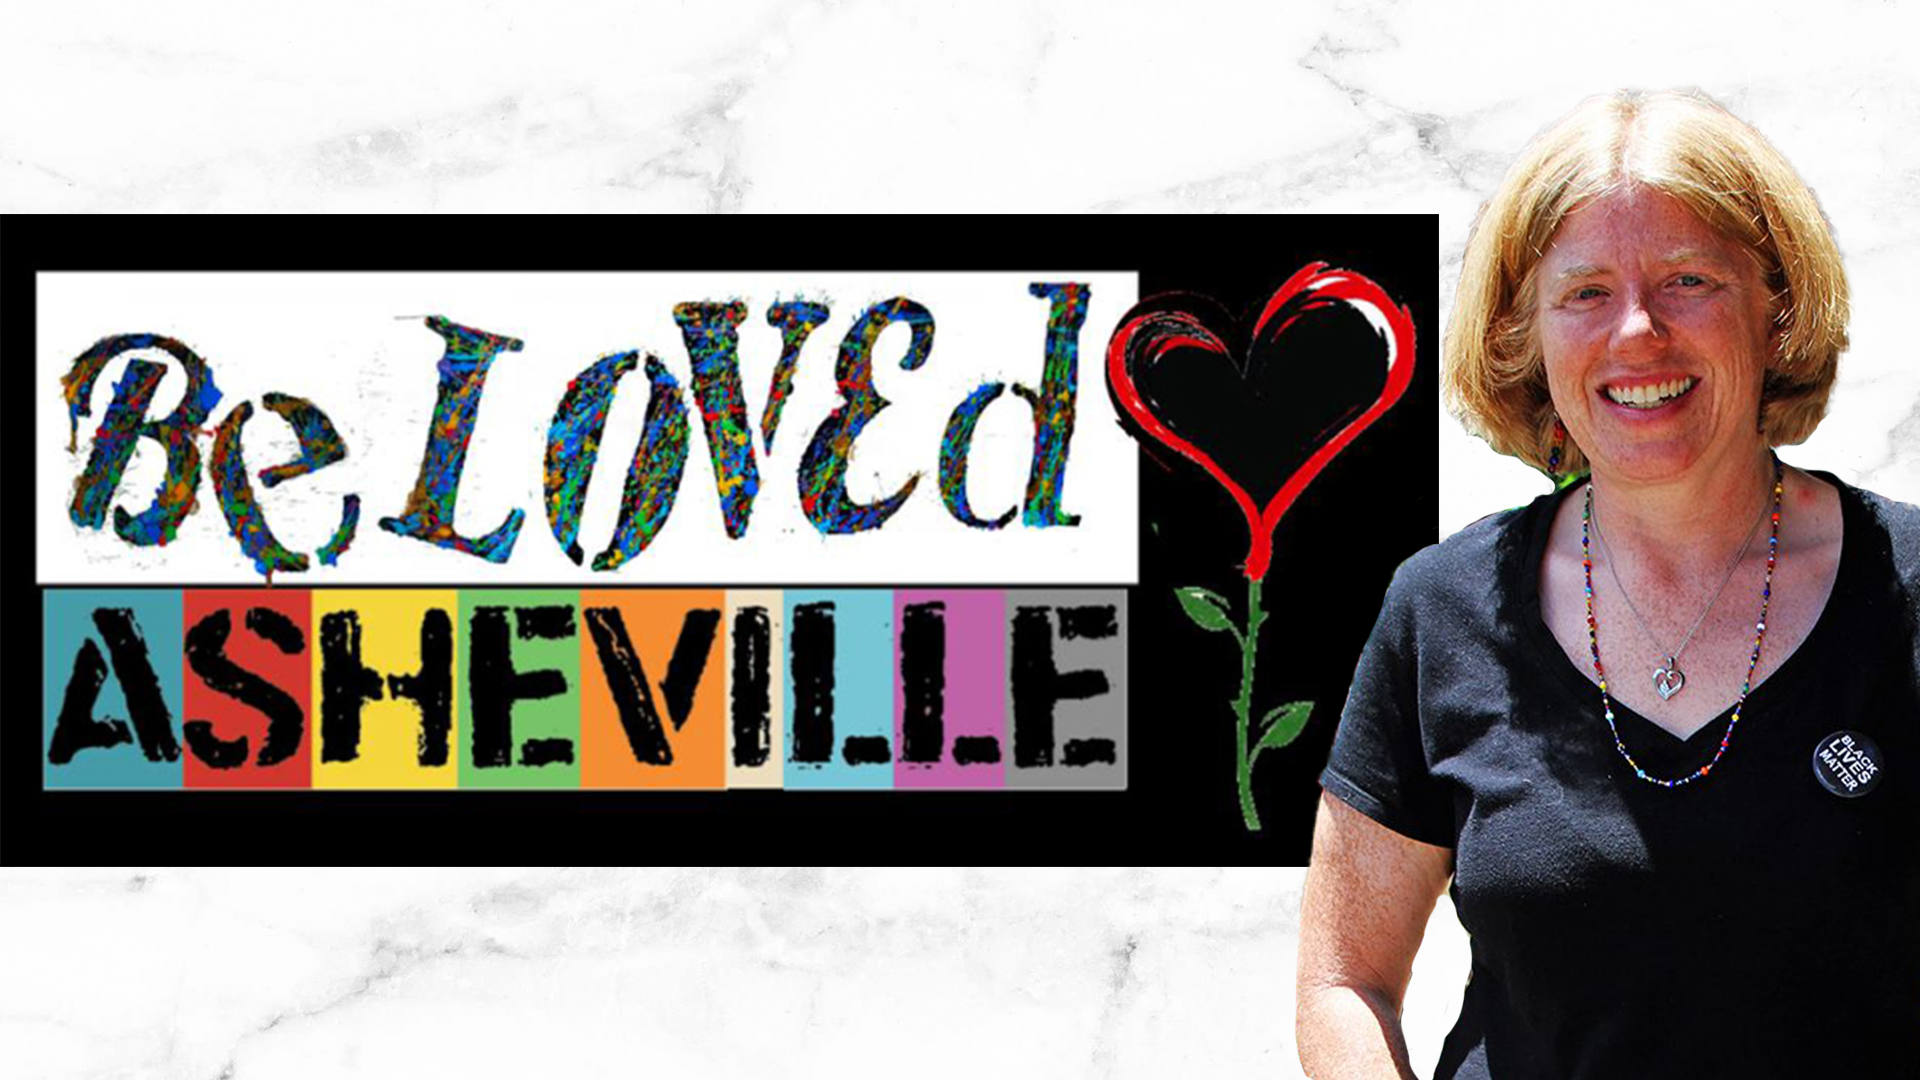 BELOVED ASHEVILLE WITH AMY CANTRELL & PONKHO BERMEJO   AREN 101